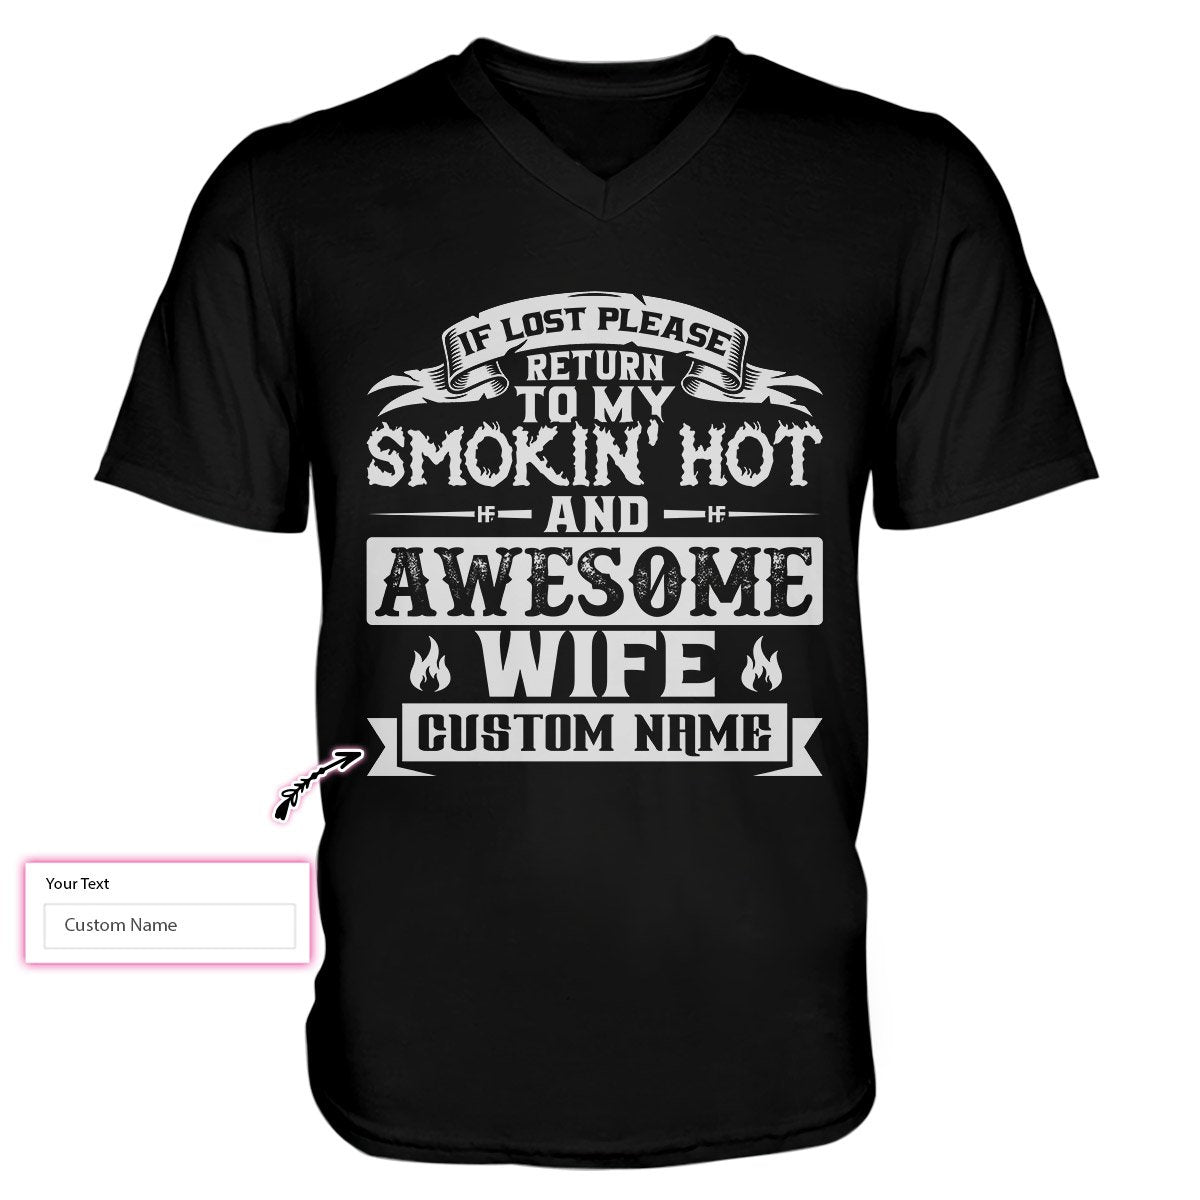 If Lost Please Return To My Smokin' Hot And Awesome Wife EZ21 1311 Custom Men V-neck T-shirt